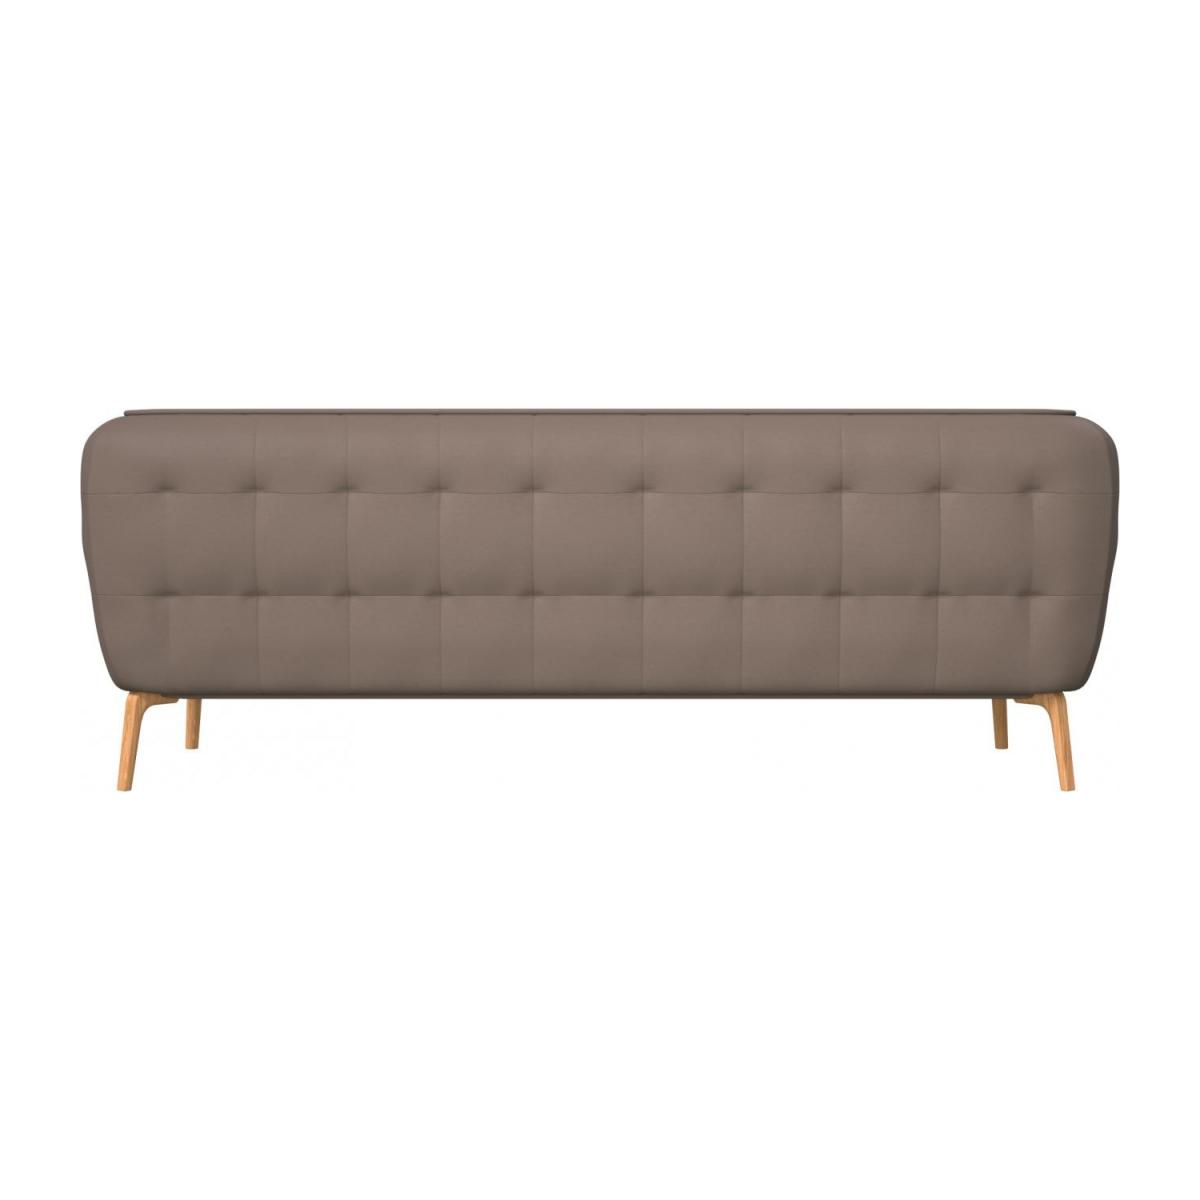 3 seater sofa in Eton veined leather, stone and natural oak feet n°3